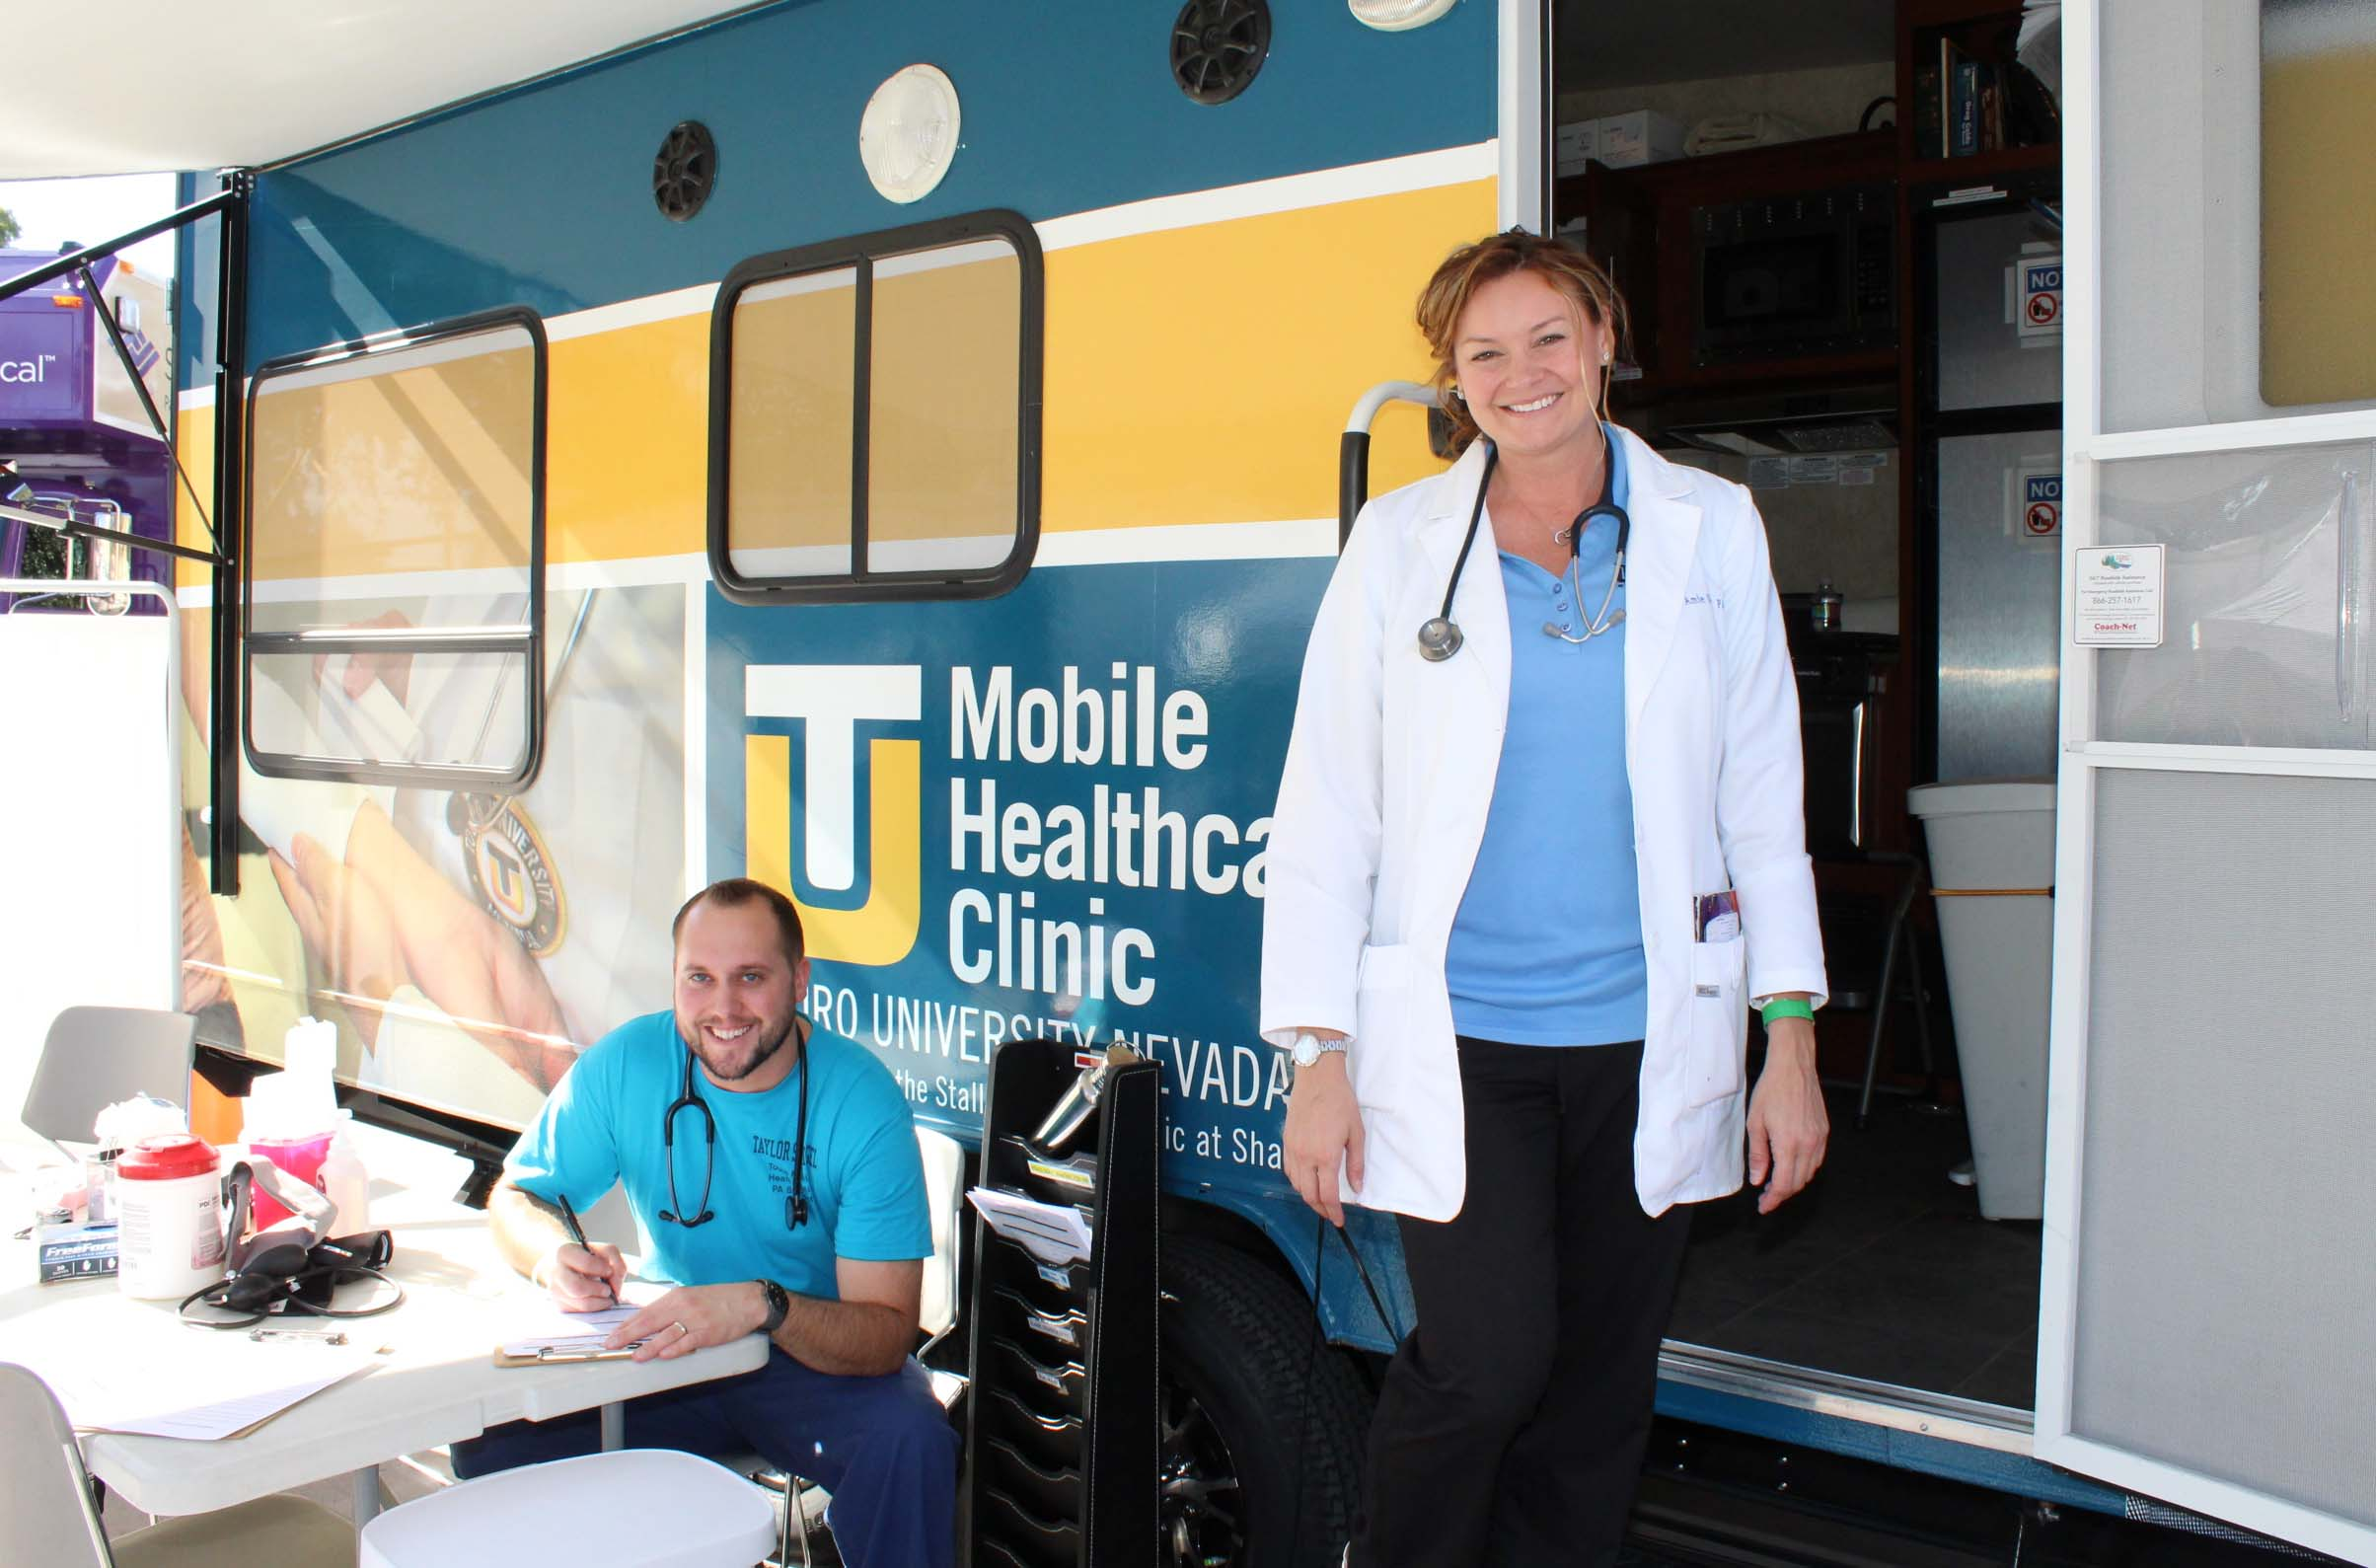 Students from the Physician Assistant Studies program outside of the mobile healthcare clinic.